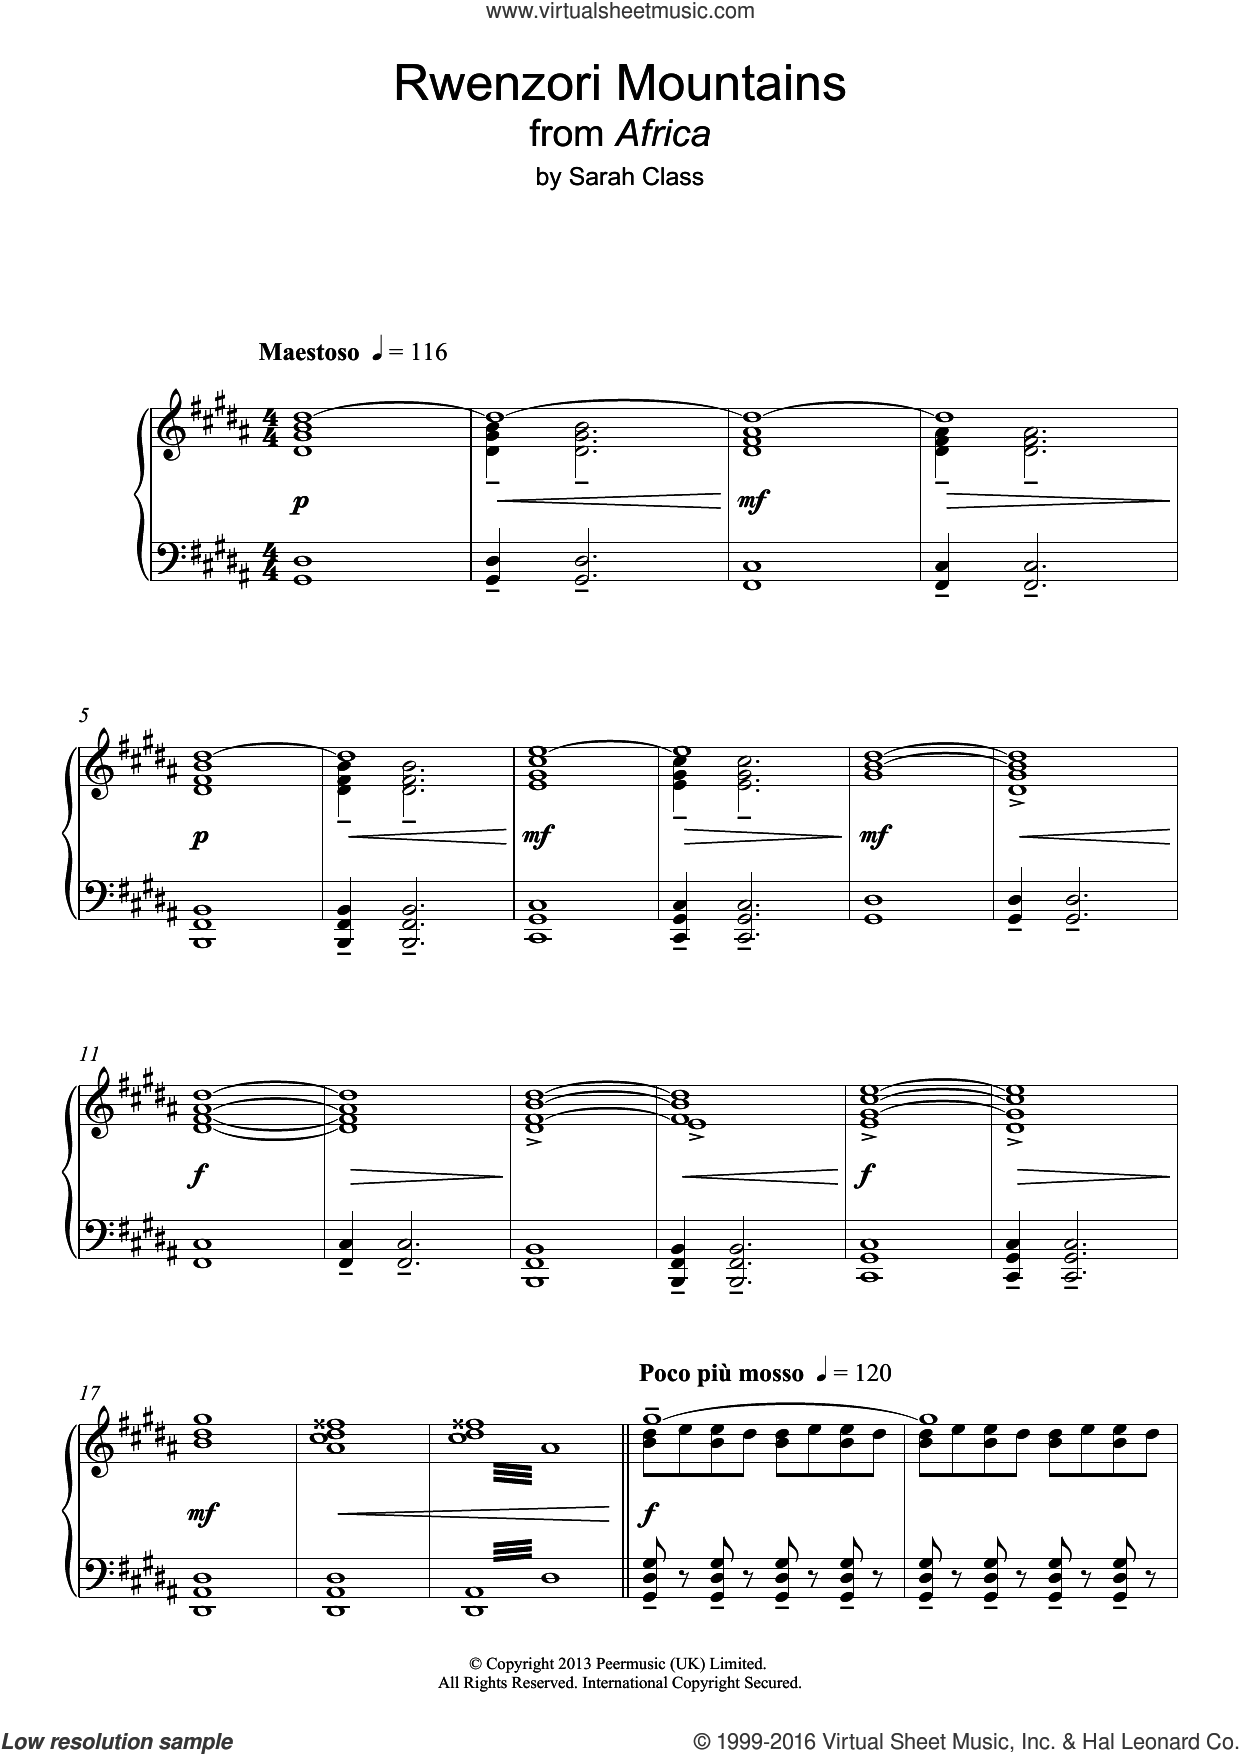 Rwenzori Mountains sheet music for piano solo by Sarah Class, intermediate skill level